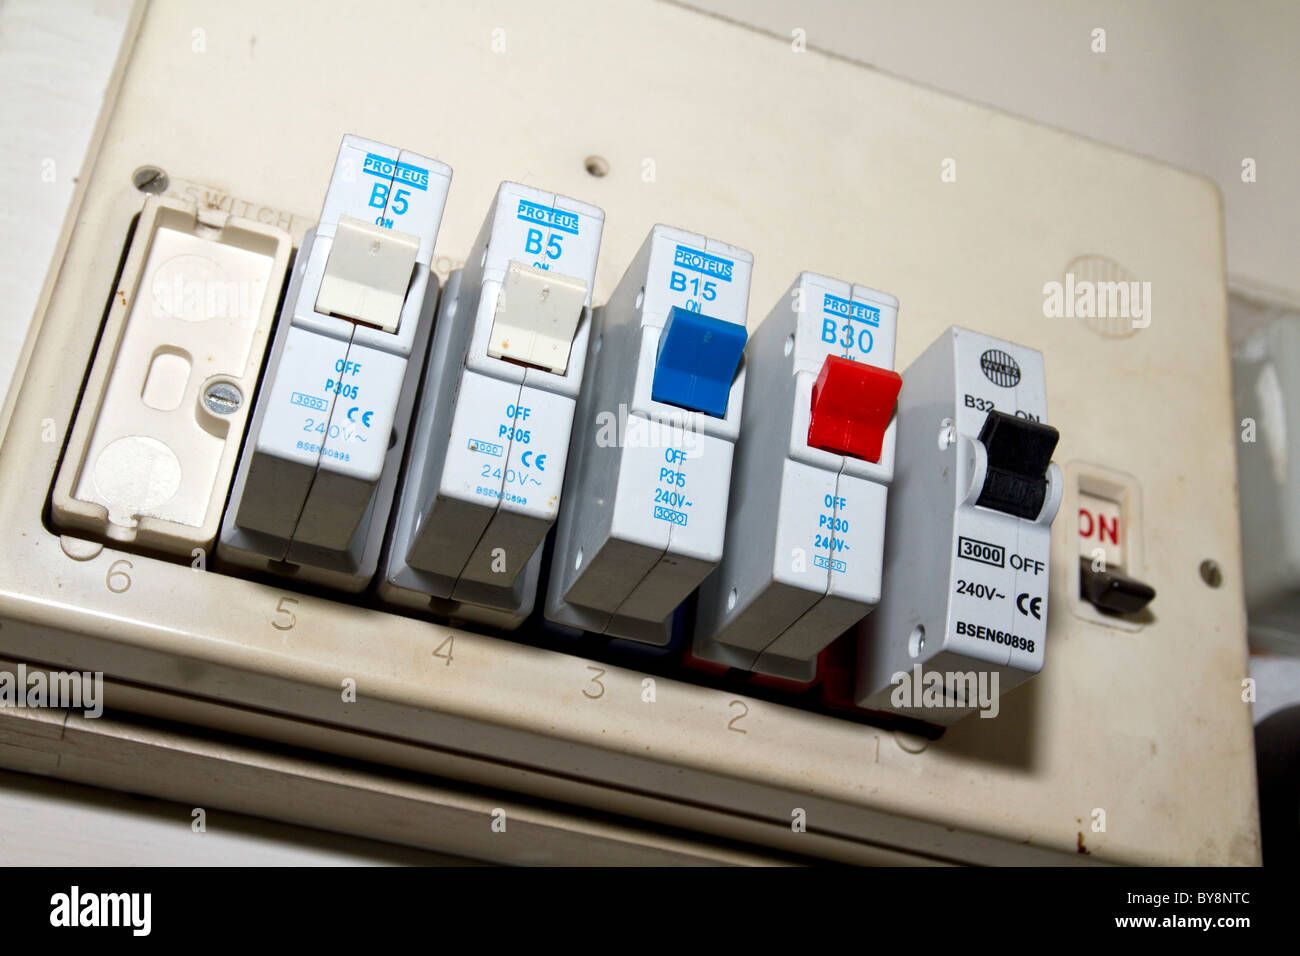 uk old electric fuse box in a london house BY8NTC fuse box fuse fuse box wiring diagram \u2022 wiring diagrams j squared co fuse box fuse replacement at aneh.co